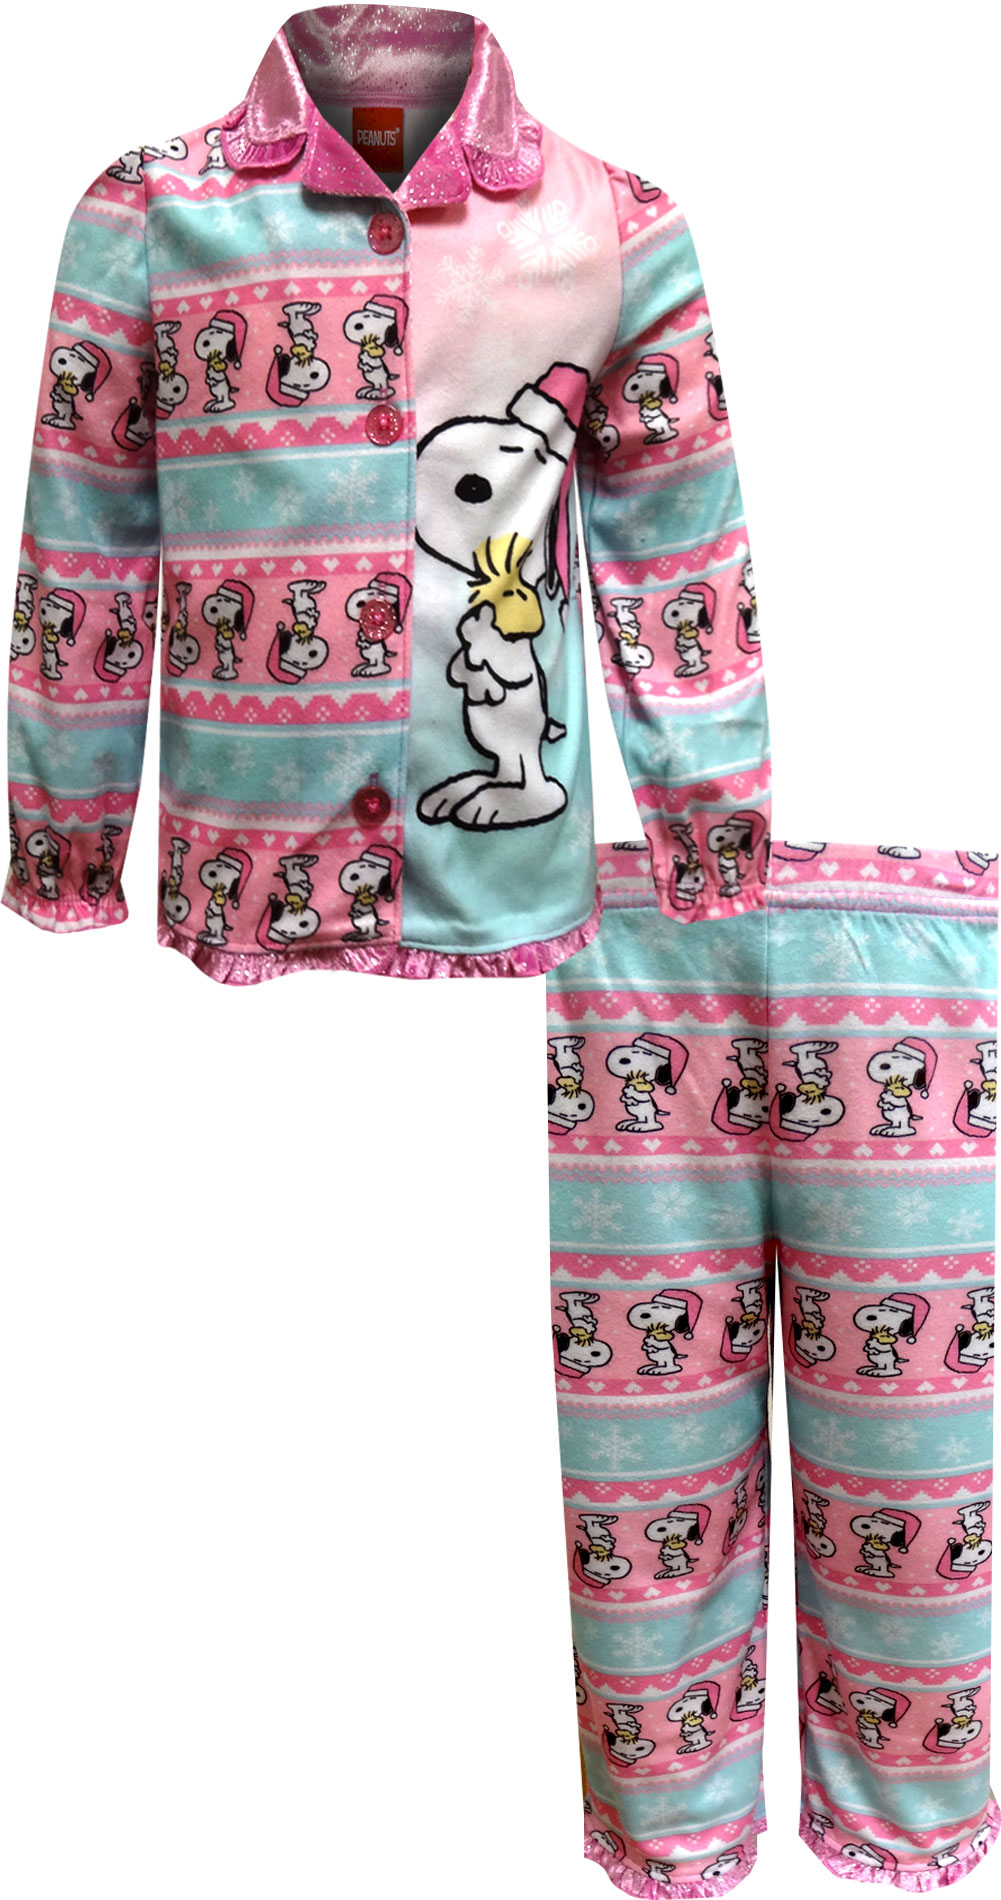 Image of Adorable Peanuts Woodstock Snoopy Christmas Pajamas for Toddler Girls